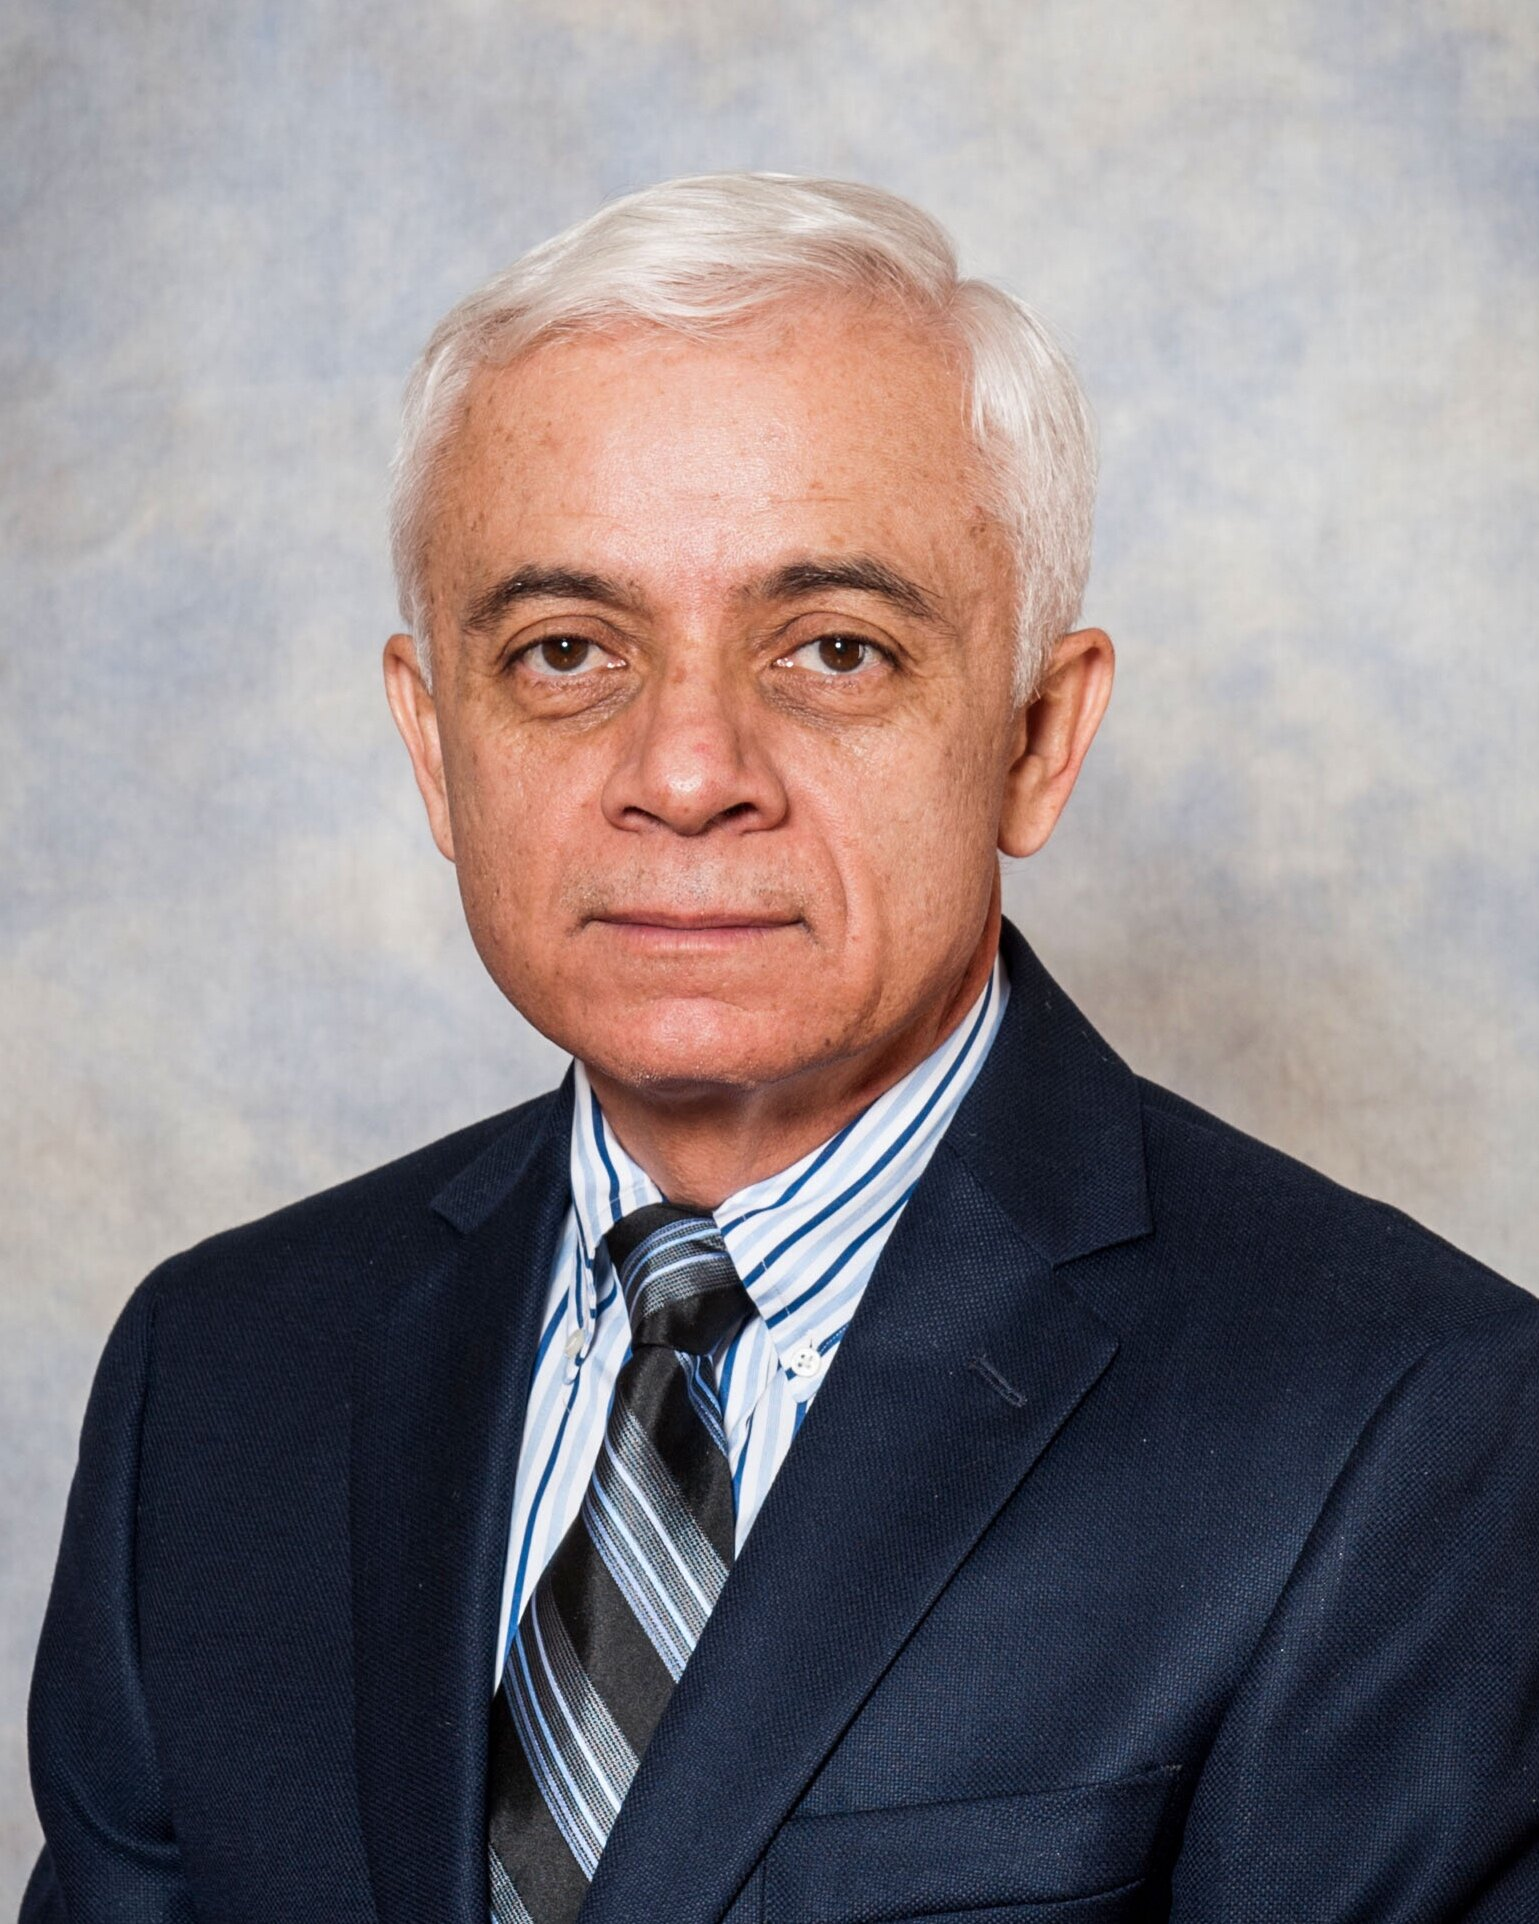 OUTSTANDING TECHNICAL ACHIEVEMENTCarlos M.Villa, Ph.D. - Principal Research ScientistReaction Engineering GroupThe Dow Chemical Company